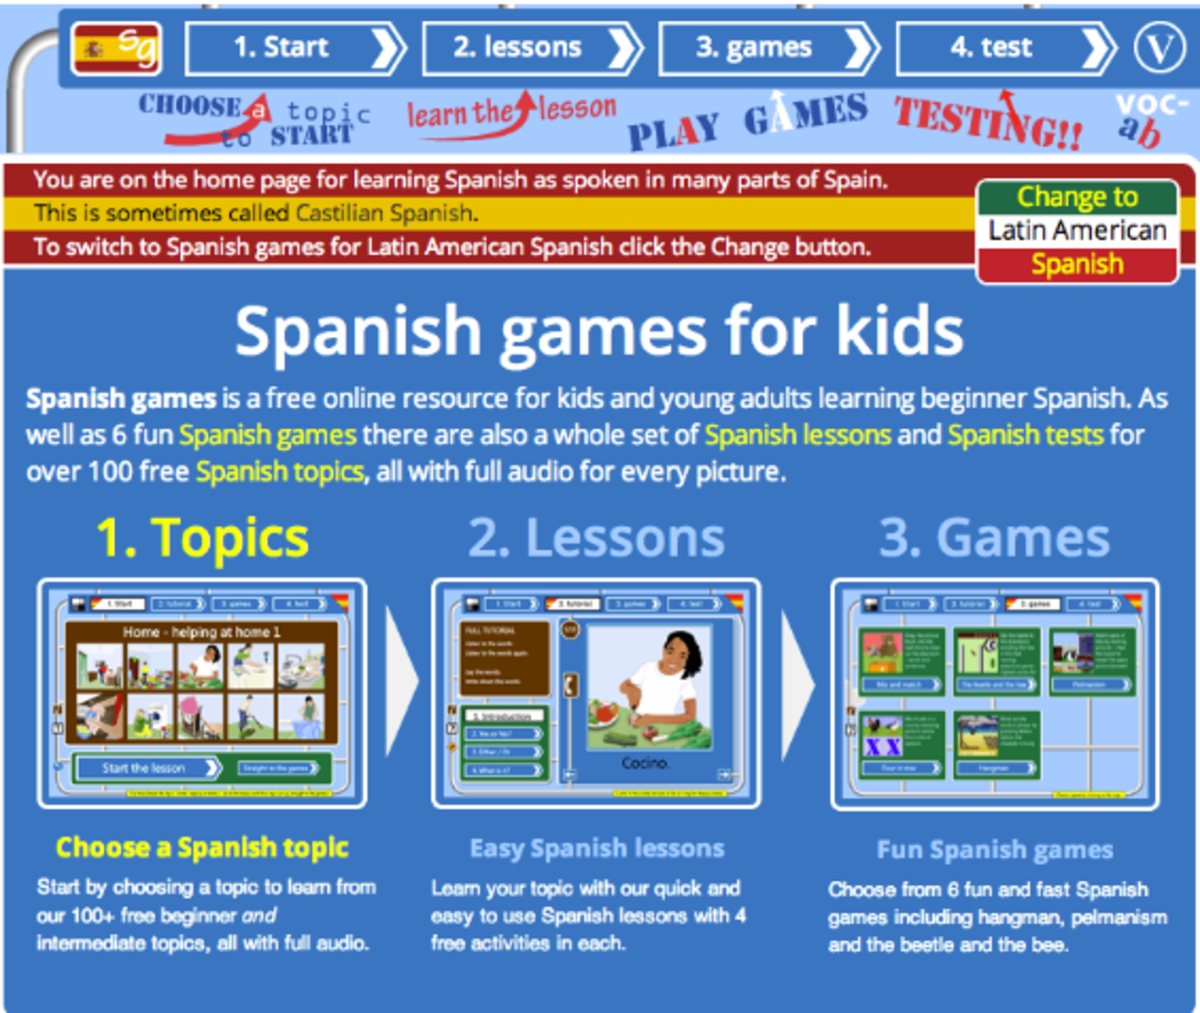 123 teach me tank game - It Is Truly Panic Attack Inducing Trying To Take It All It In And If You Do Make It To A Spanish Game The Road Sign Metaphor Will Drive You Crazy